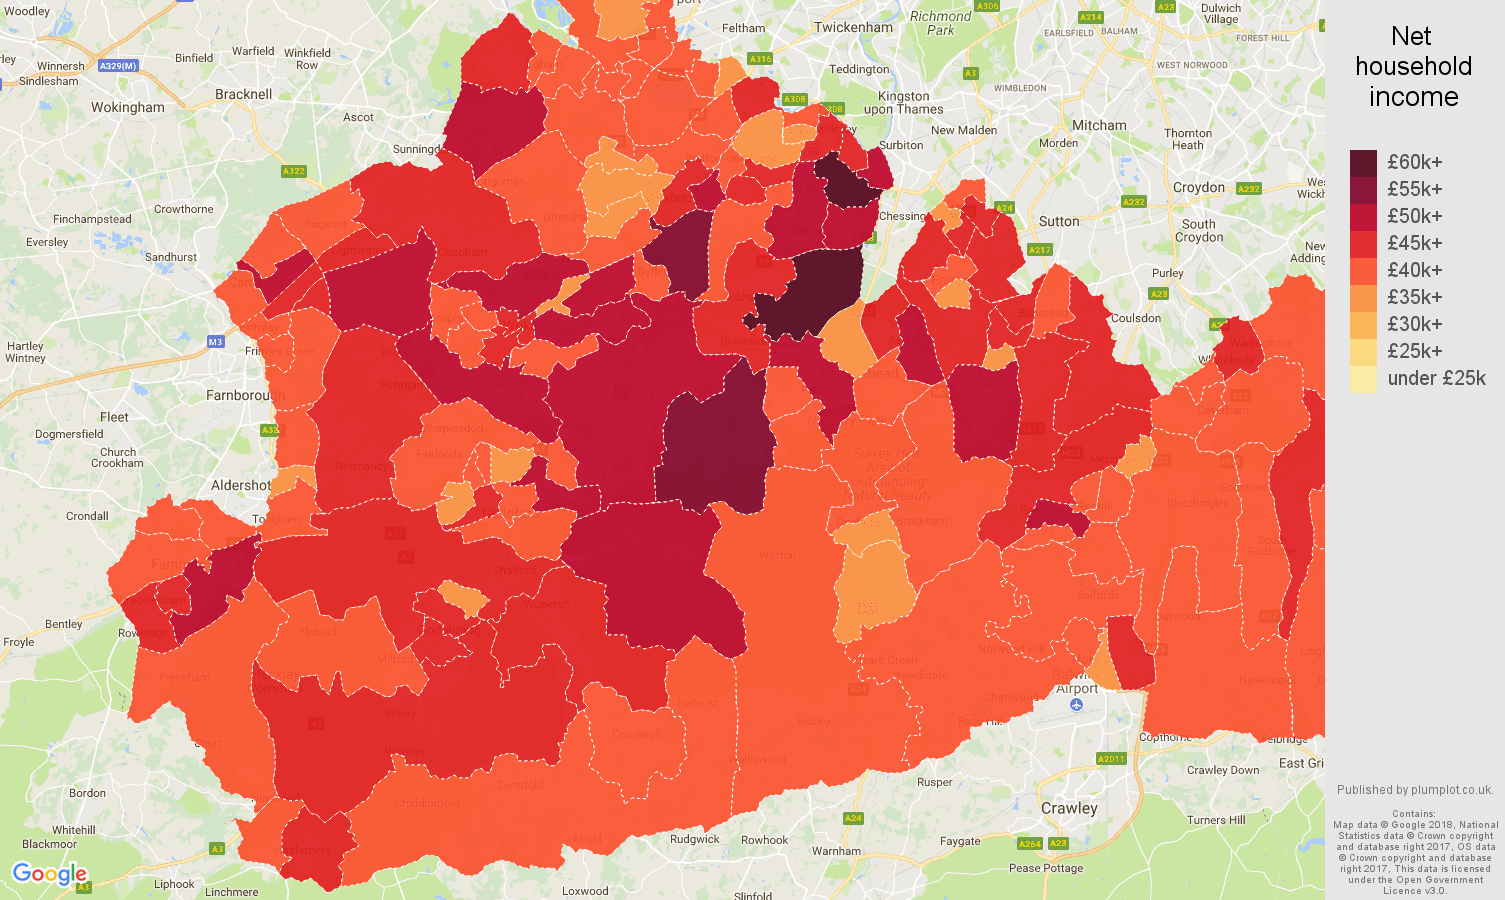 Surrey net household income map